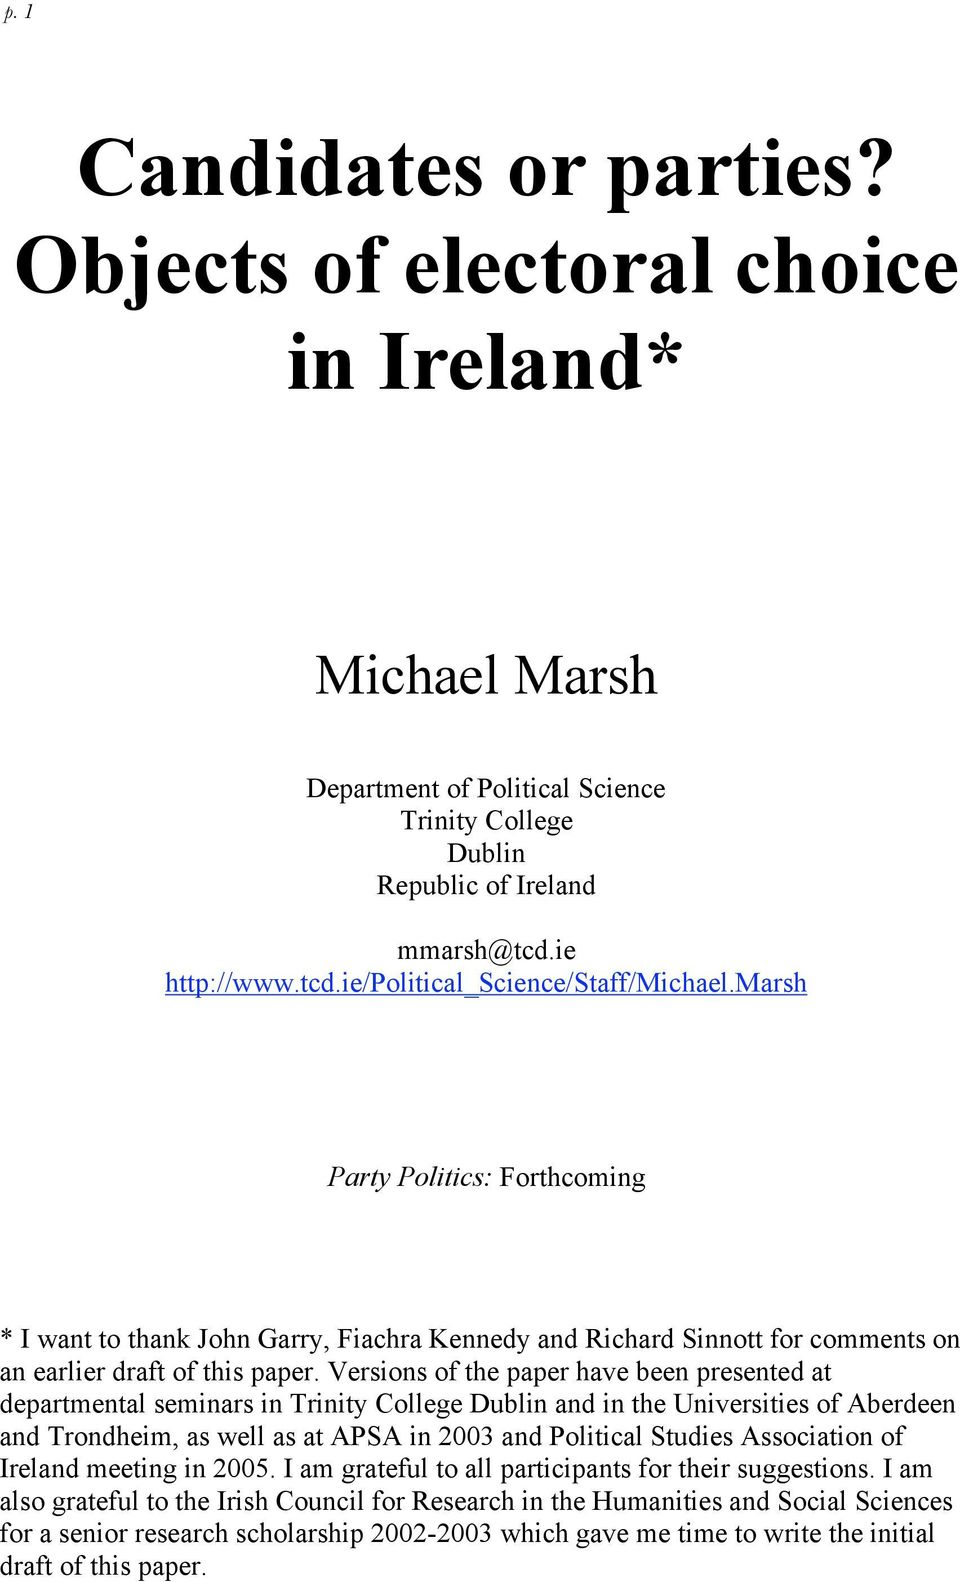 Versions of the paper have been presented at departmental seminars in Trinity College Dublin and in the Universities of Aberdeen and Trondheim, as well as at APSA in 2003 and Political Studies